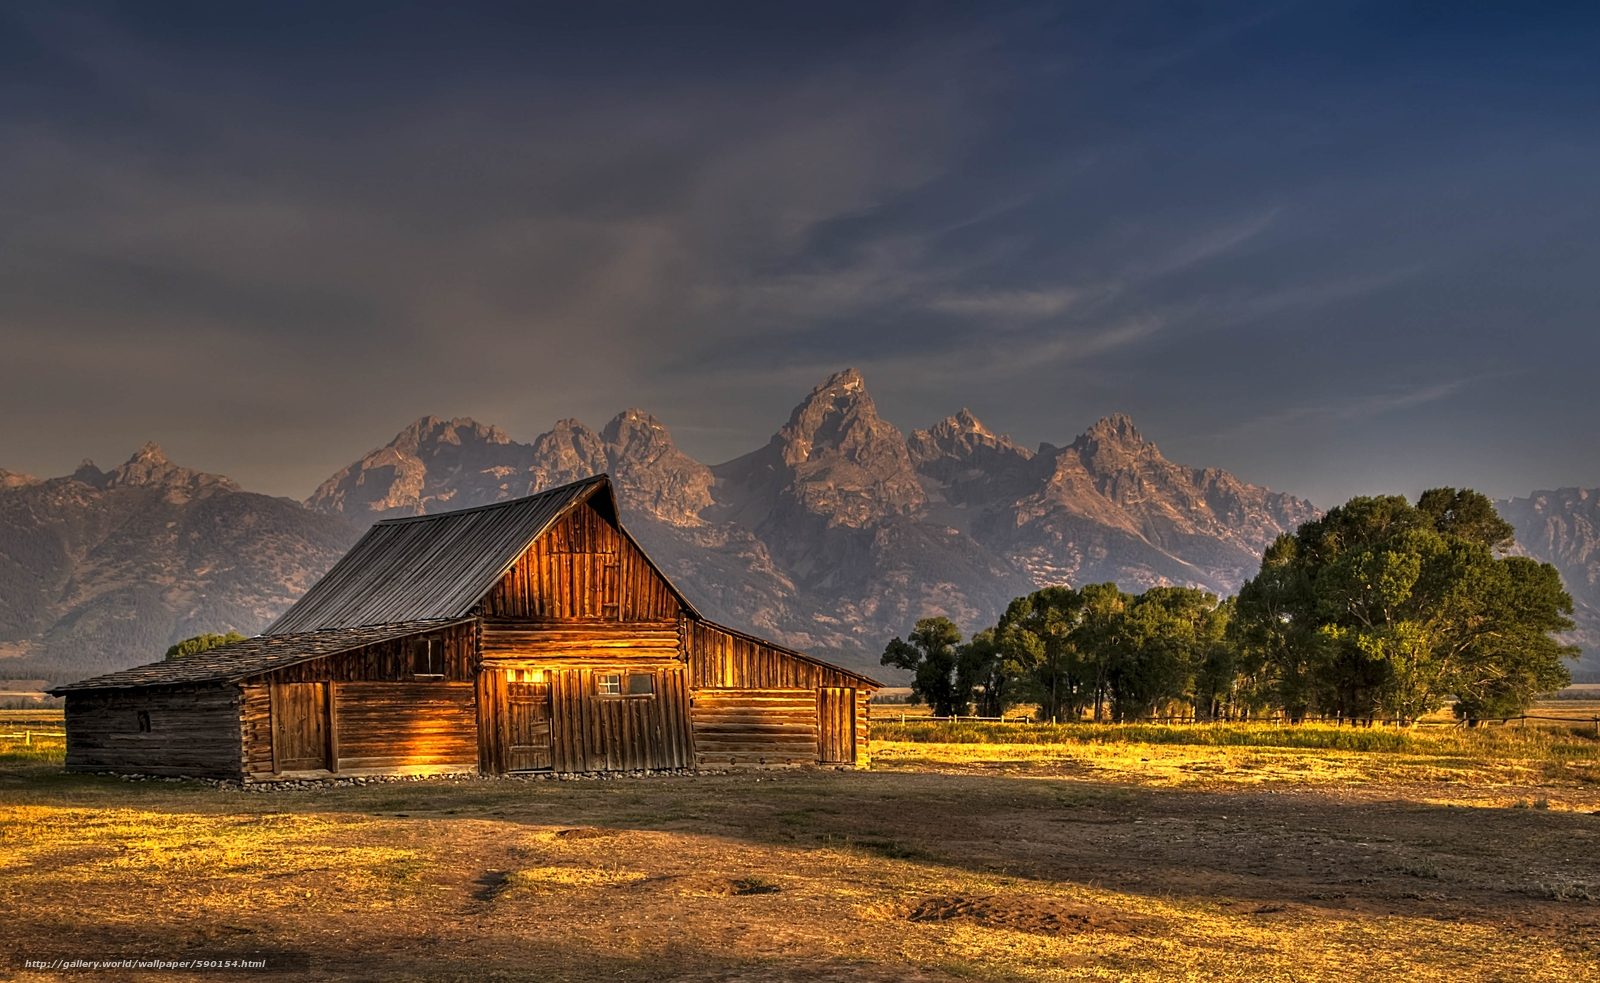 Jackson Hole Wyoming desktop wallpaper in the resolution 1600x983